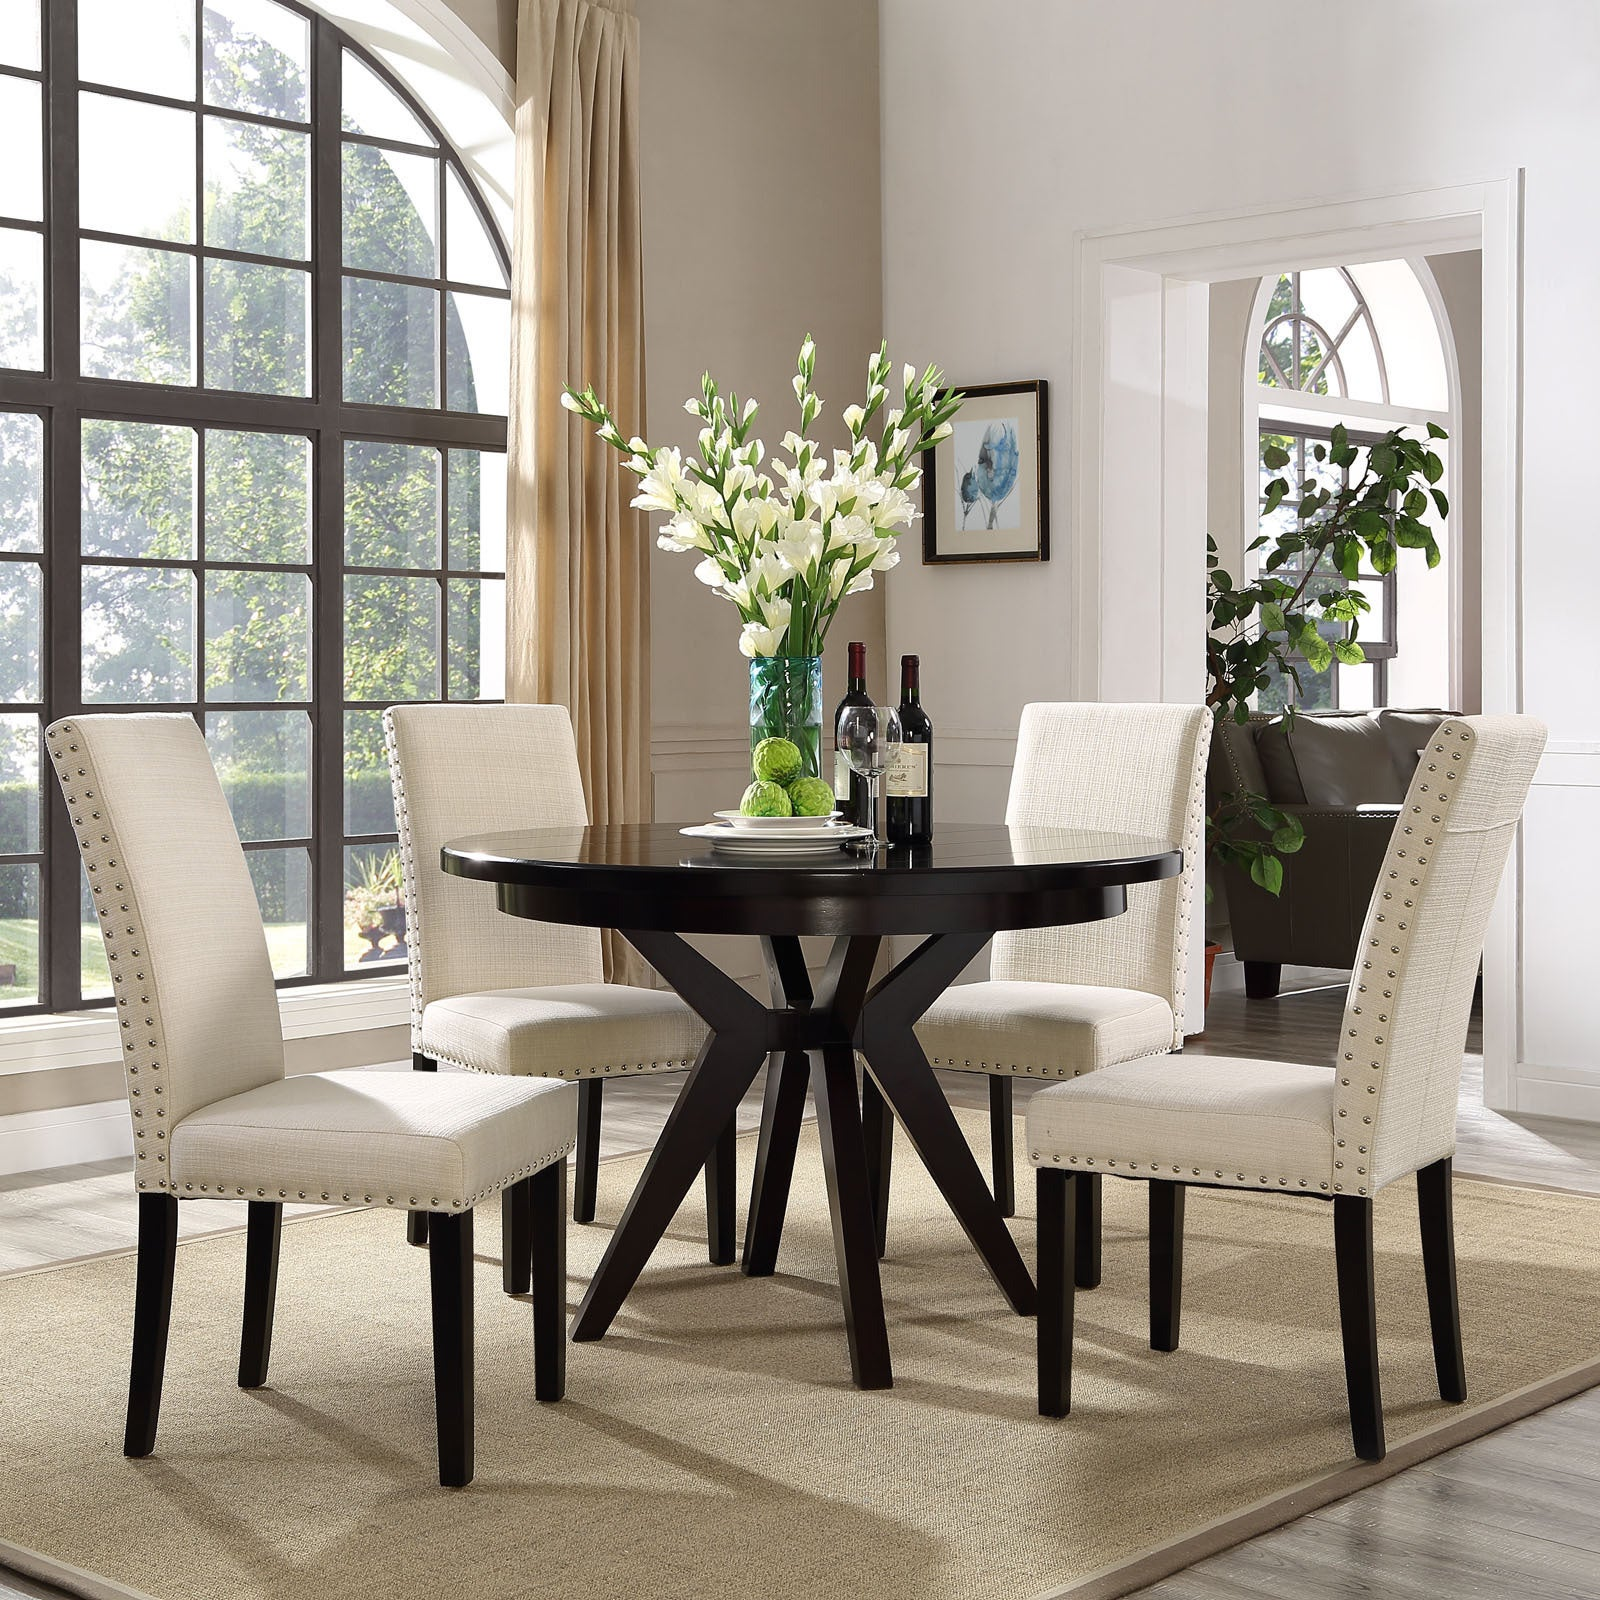 mesmerizing chairs for dining room tables